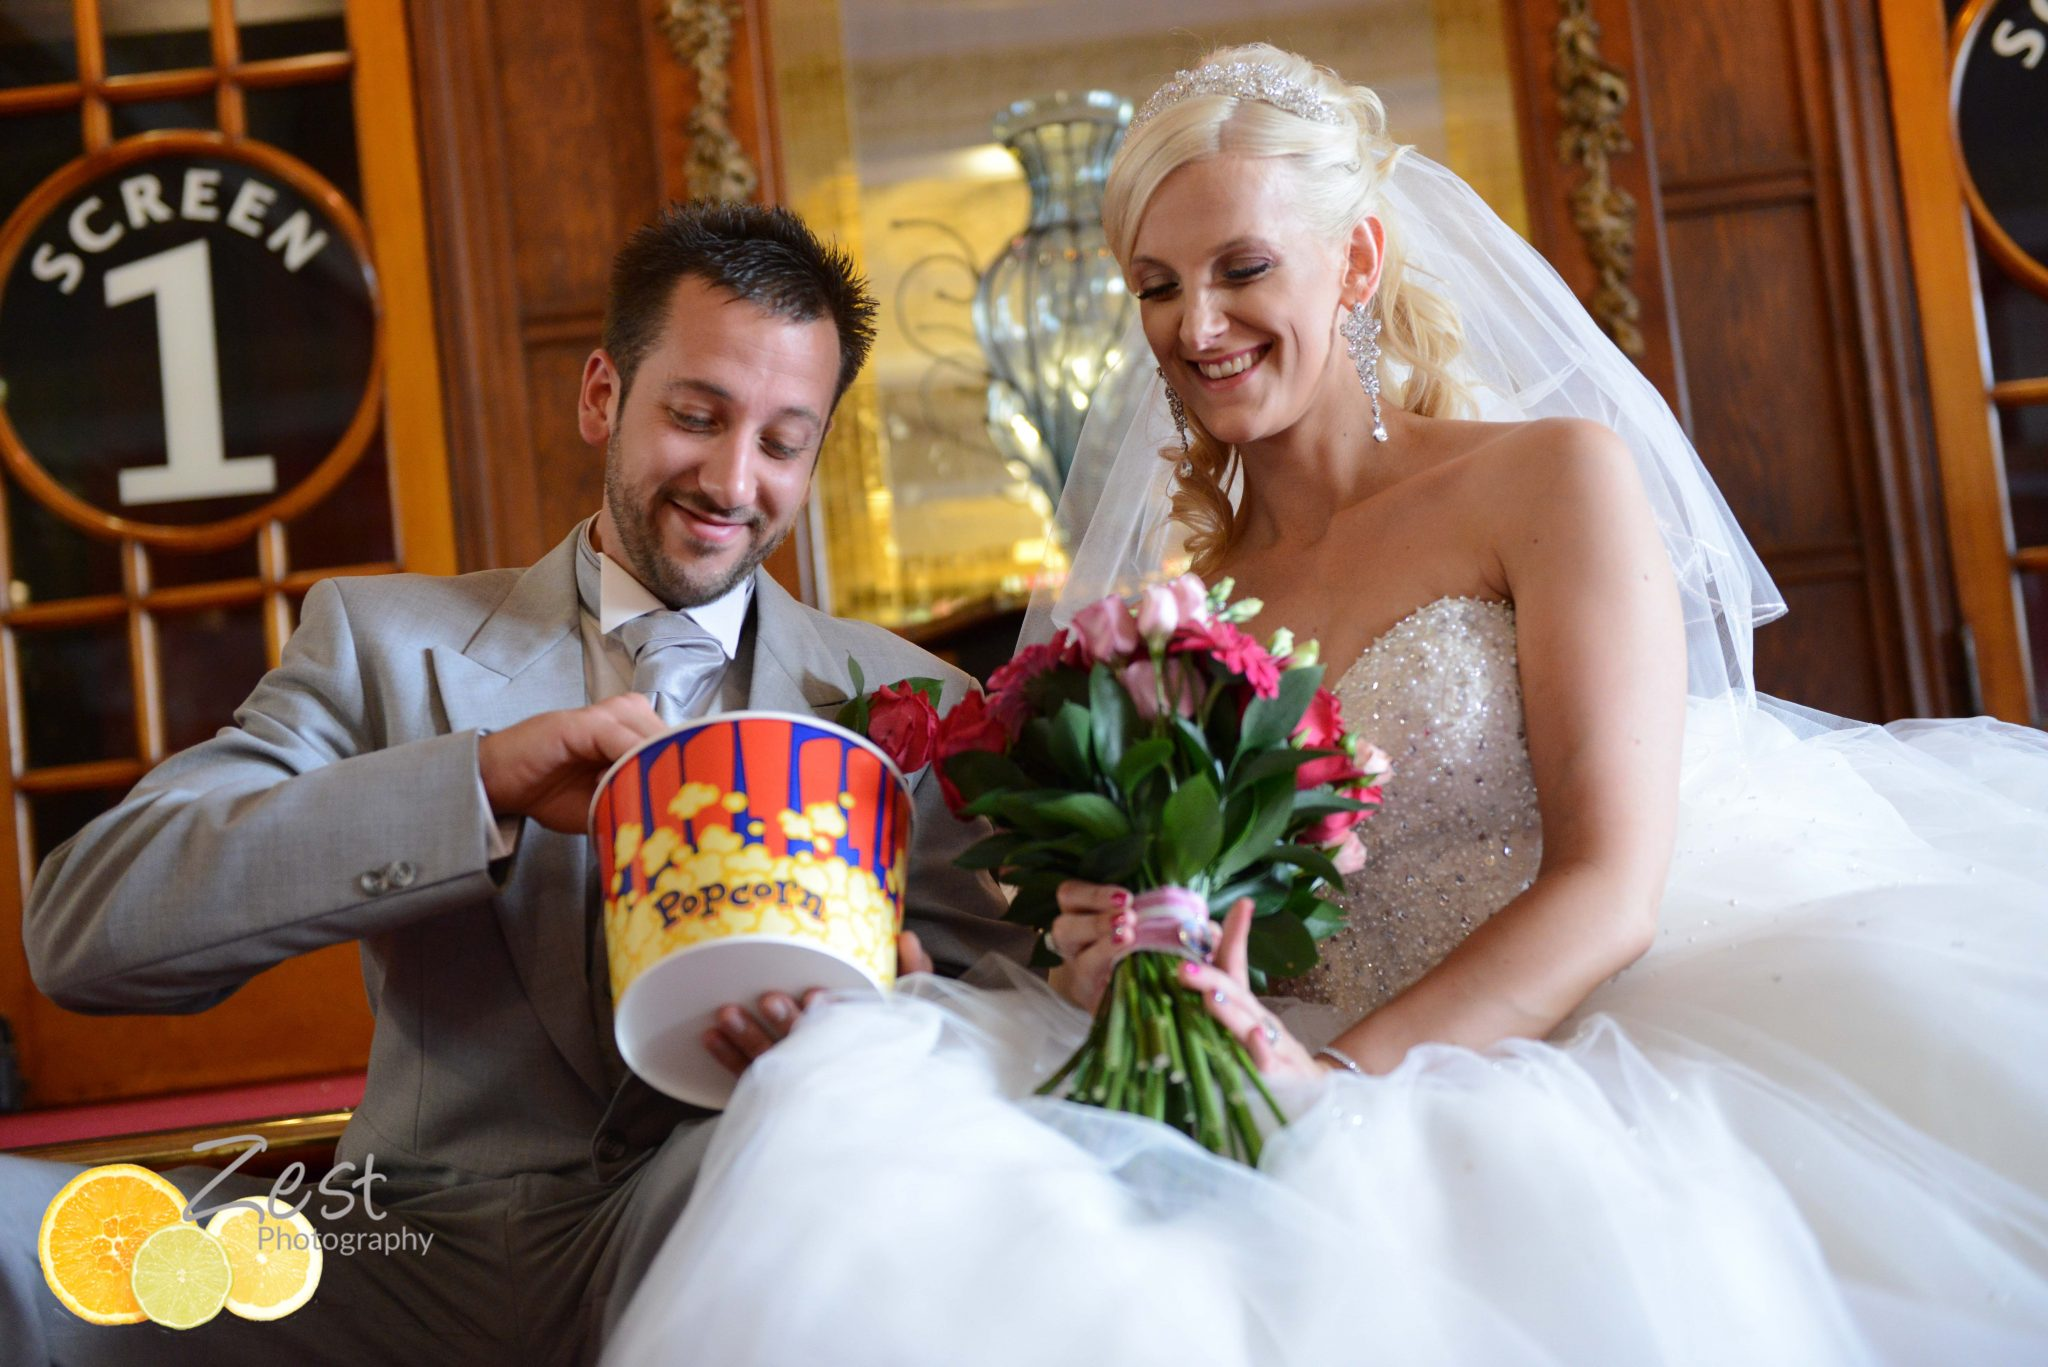 Quirky wedding photography at the dome